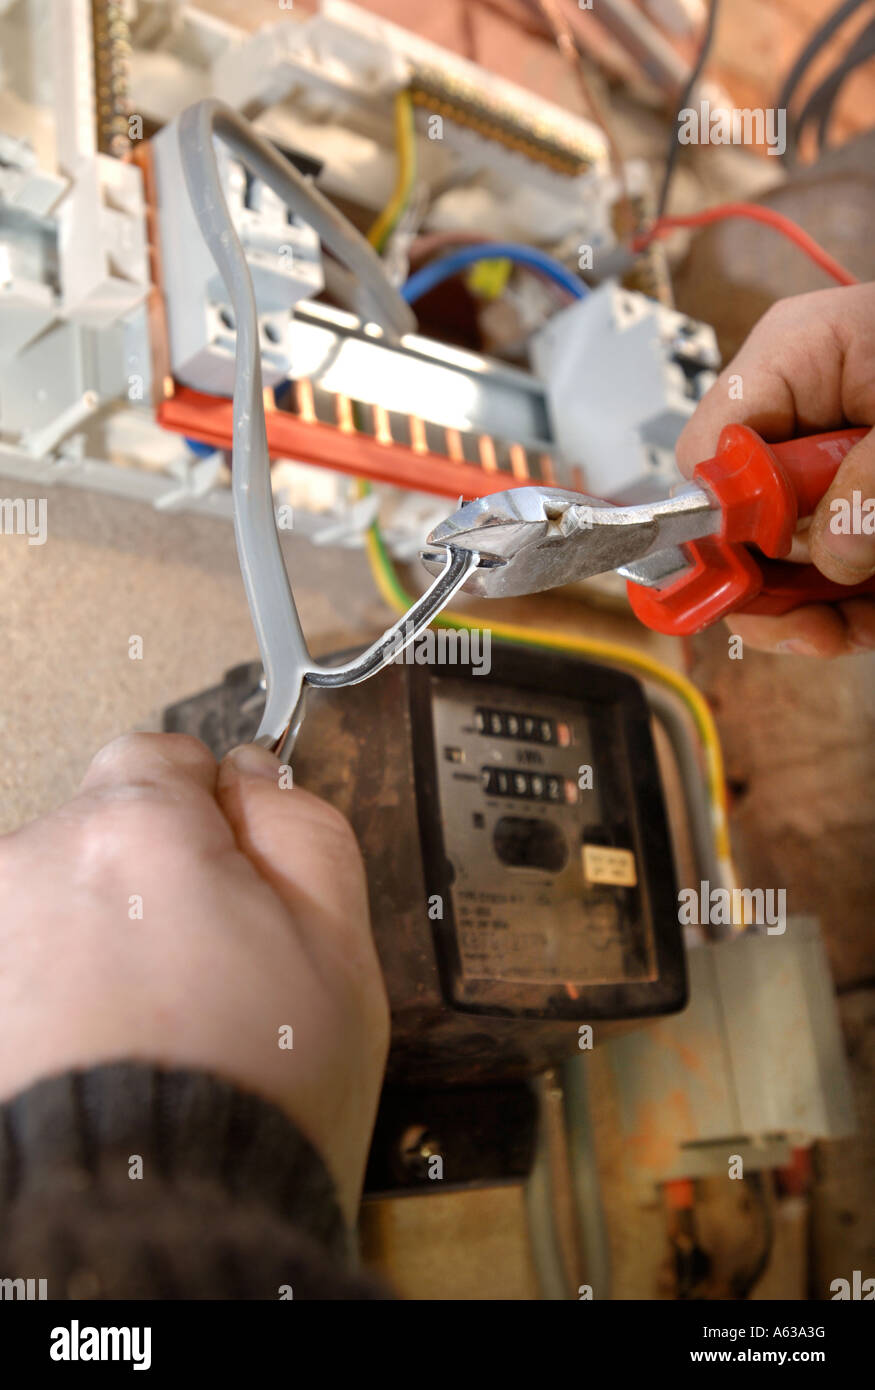 Old Switch Boxes Stock Photos Images Alamy Cartoon Electrical Fuse Box An Electrician Removes Electricity And Installs A Memera Consumer Unit Uk